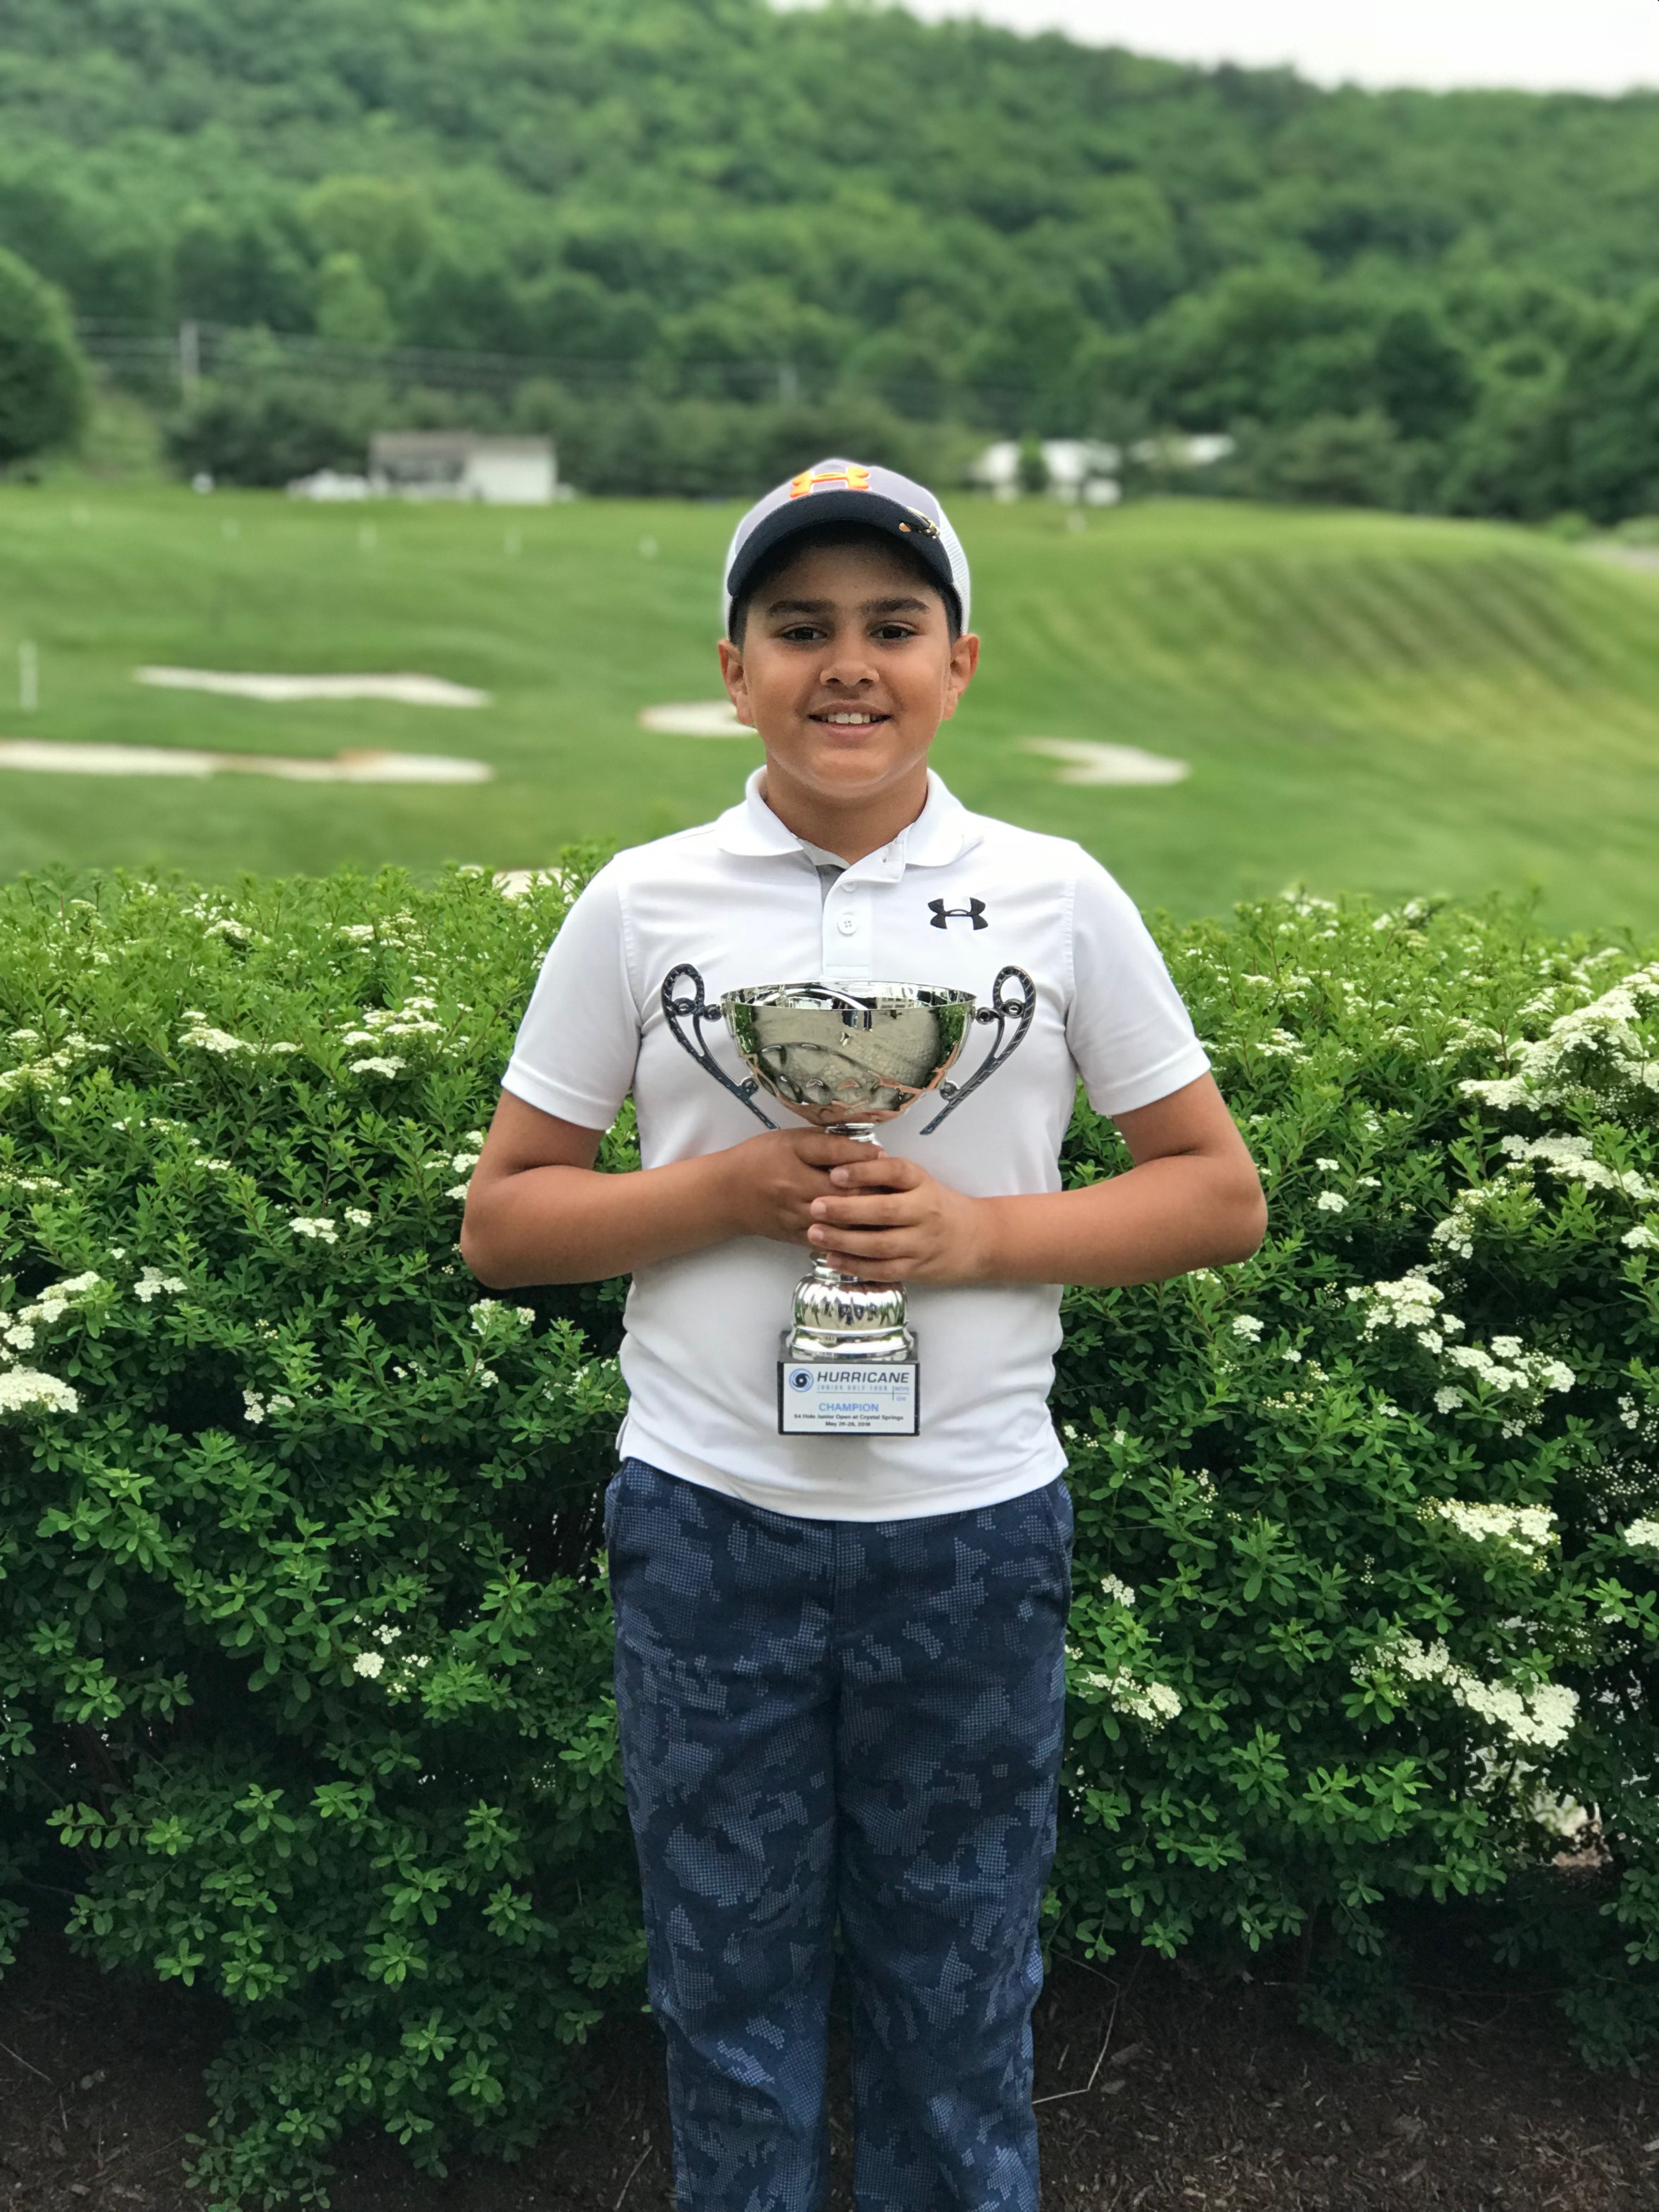 54 Hole Junior Open at Crystal Springs